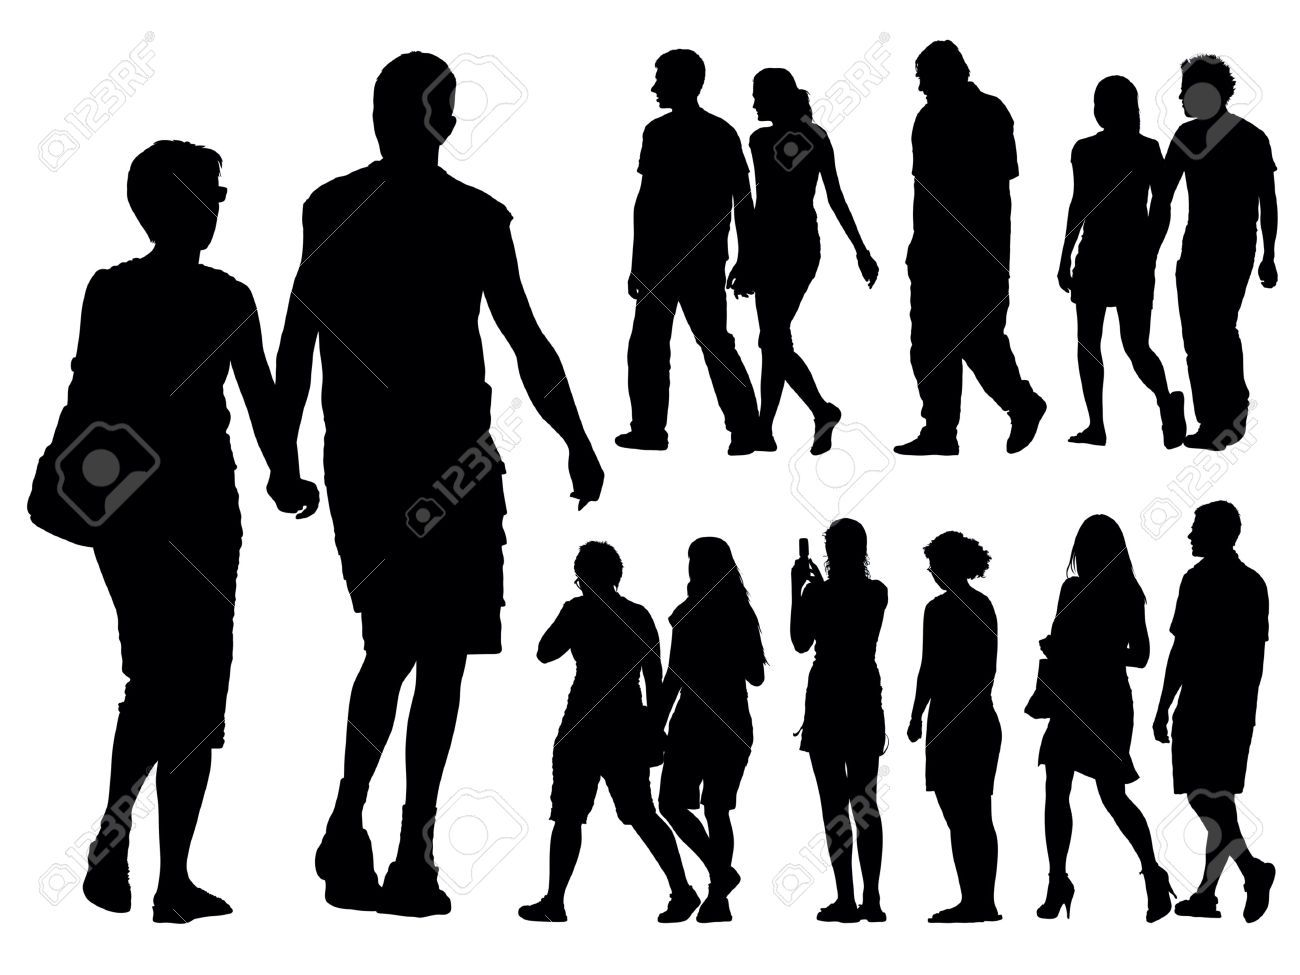 A Set Of People Silhouettes Vector Illustration Royalty Free